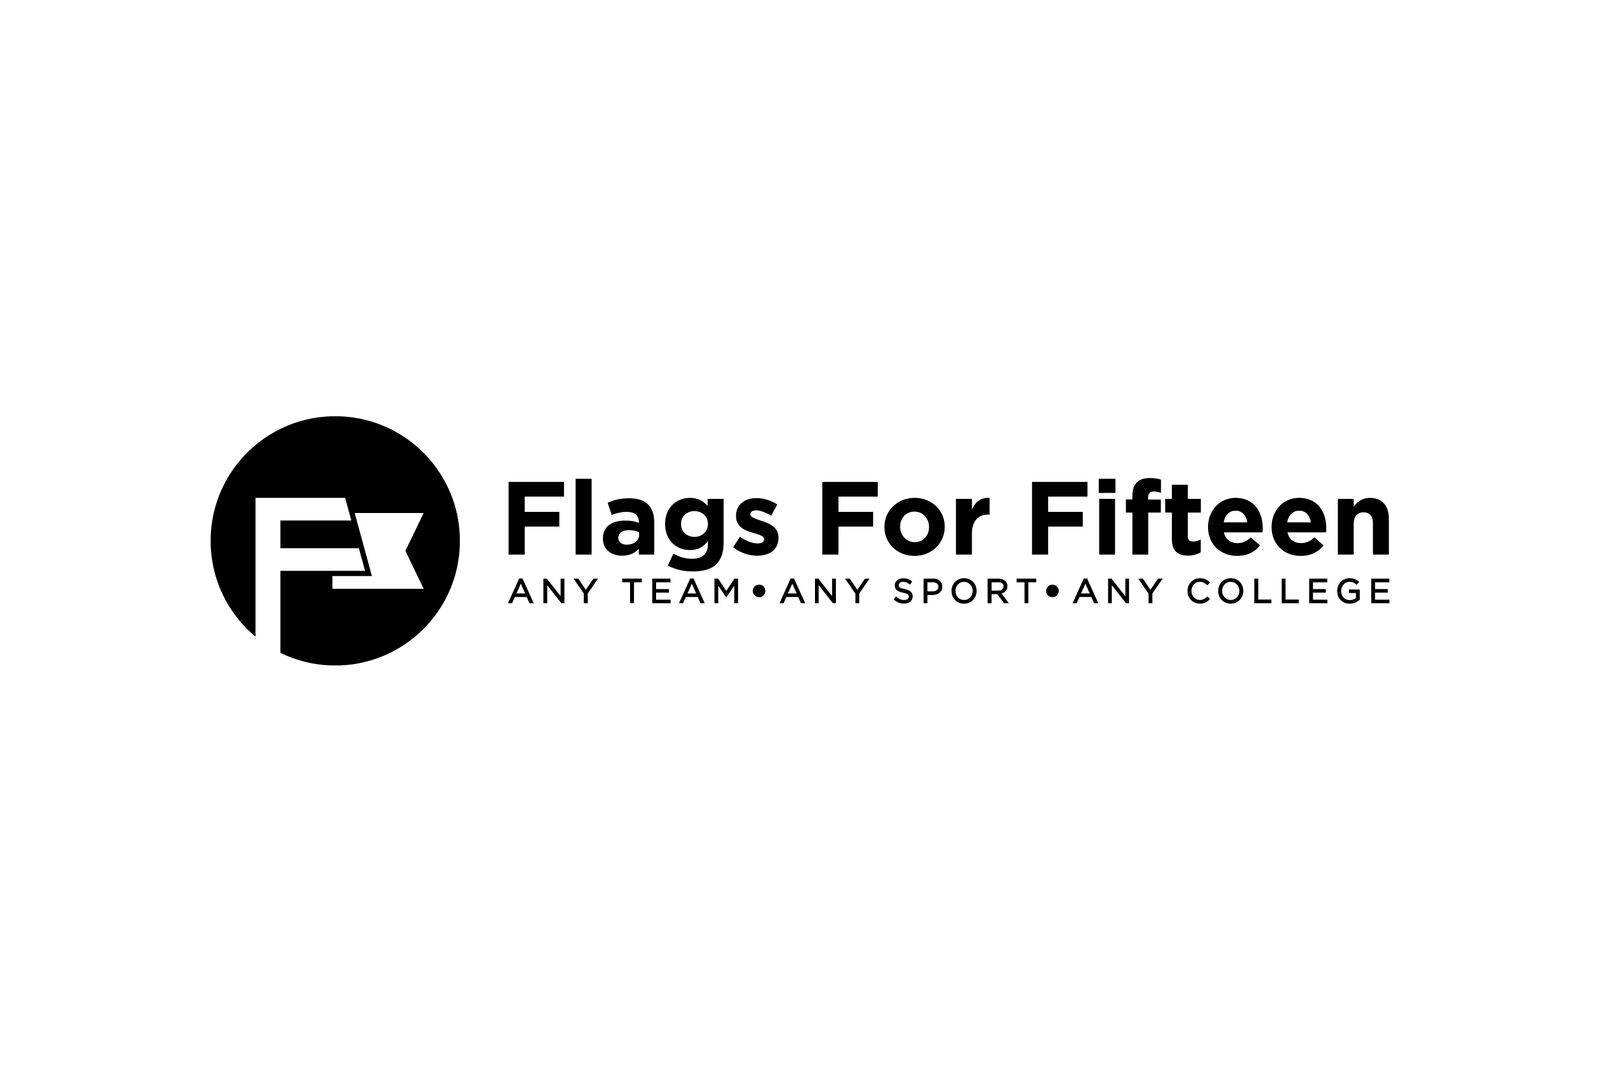 Flags For Fifteen